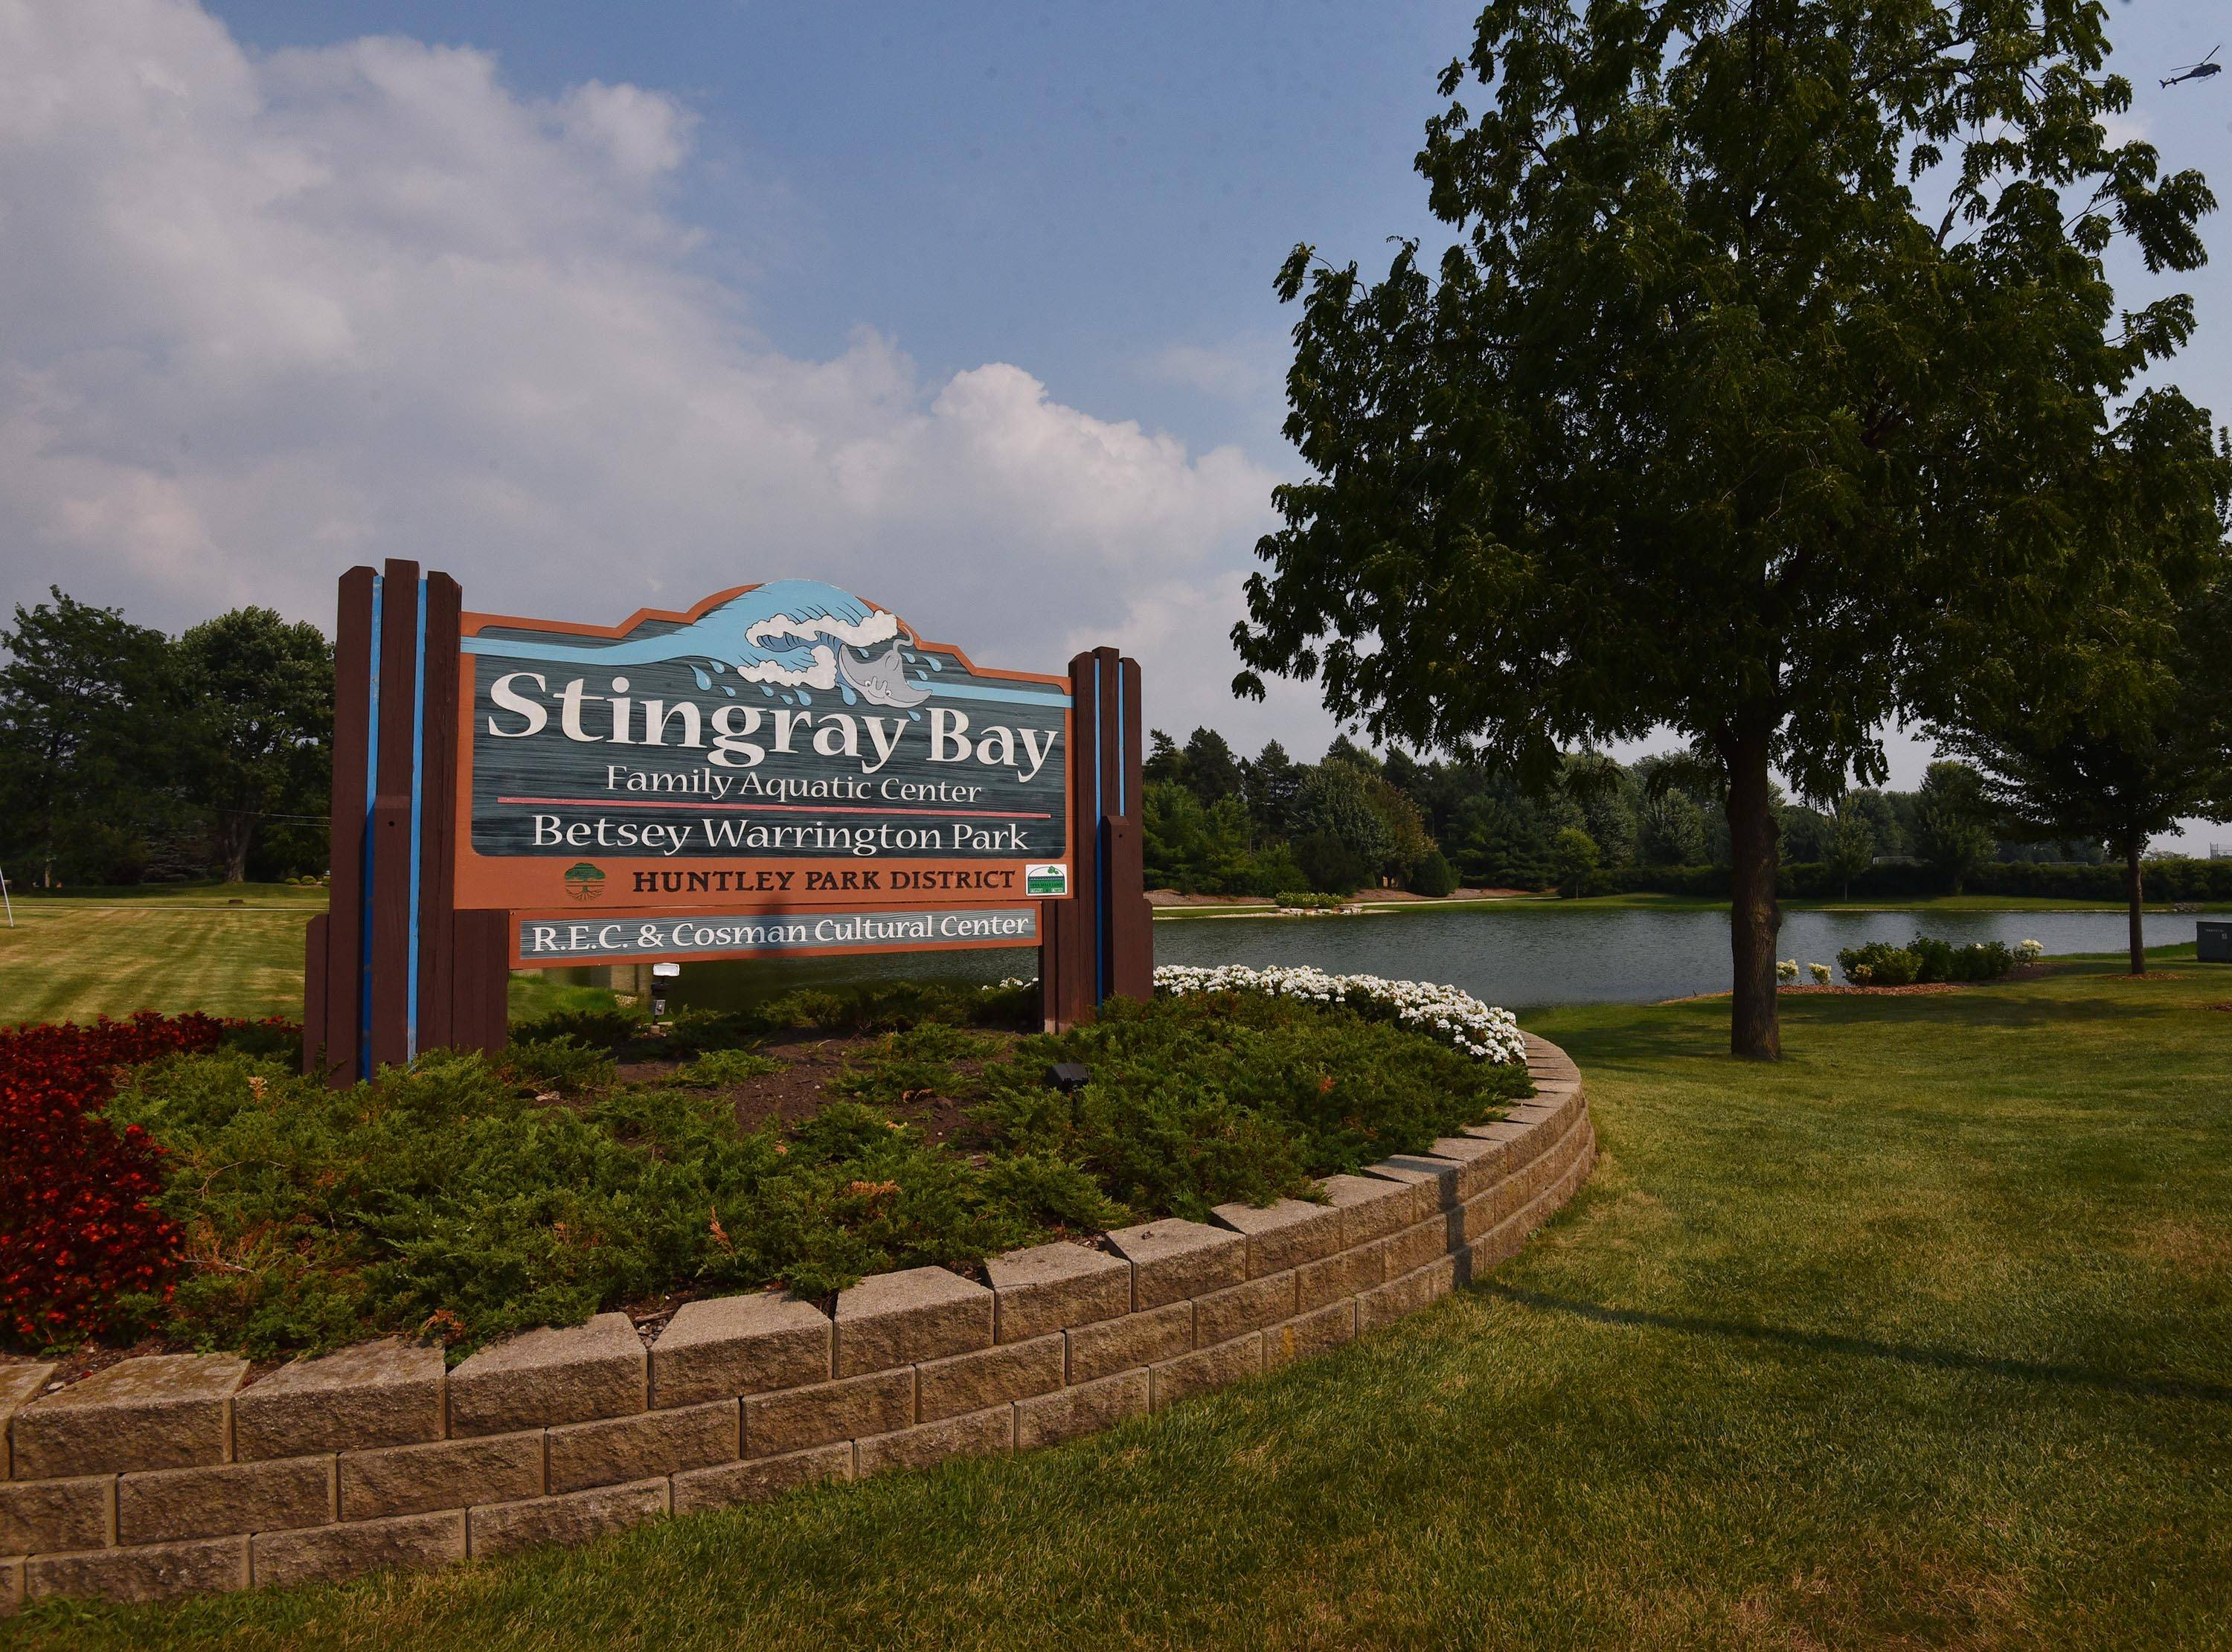 Huntley Park District employees saved two swimmers in distress Monday at the Stingray Bay Aquatic Center in Huntley.